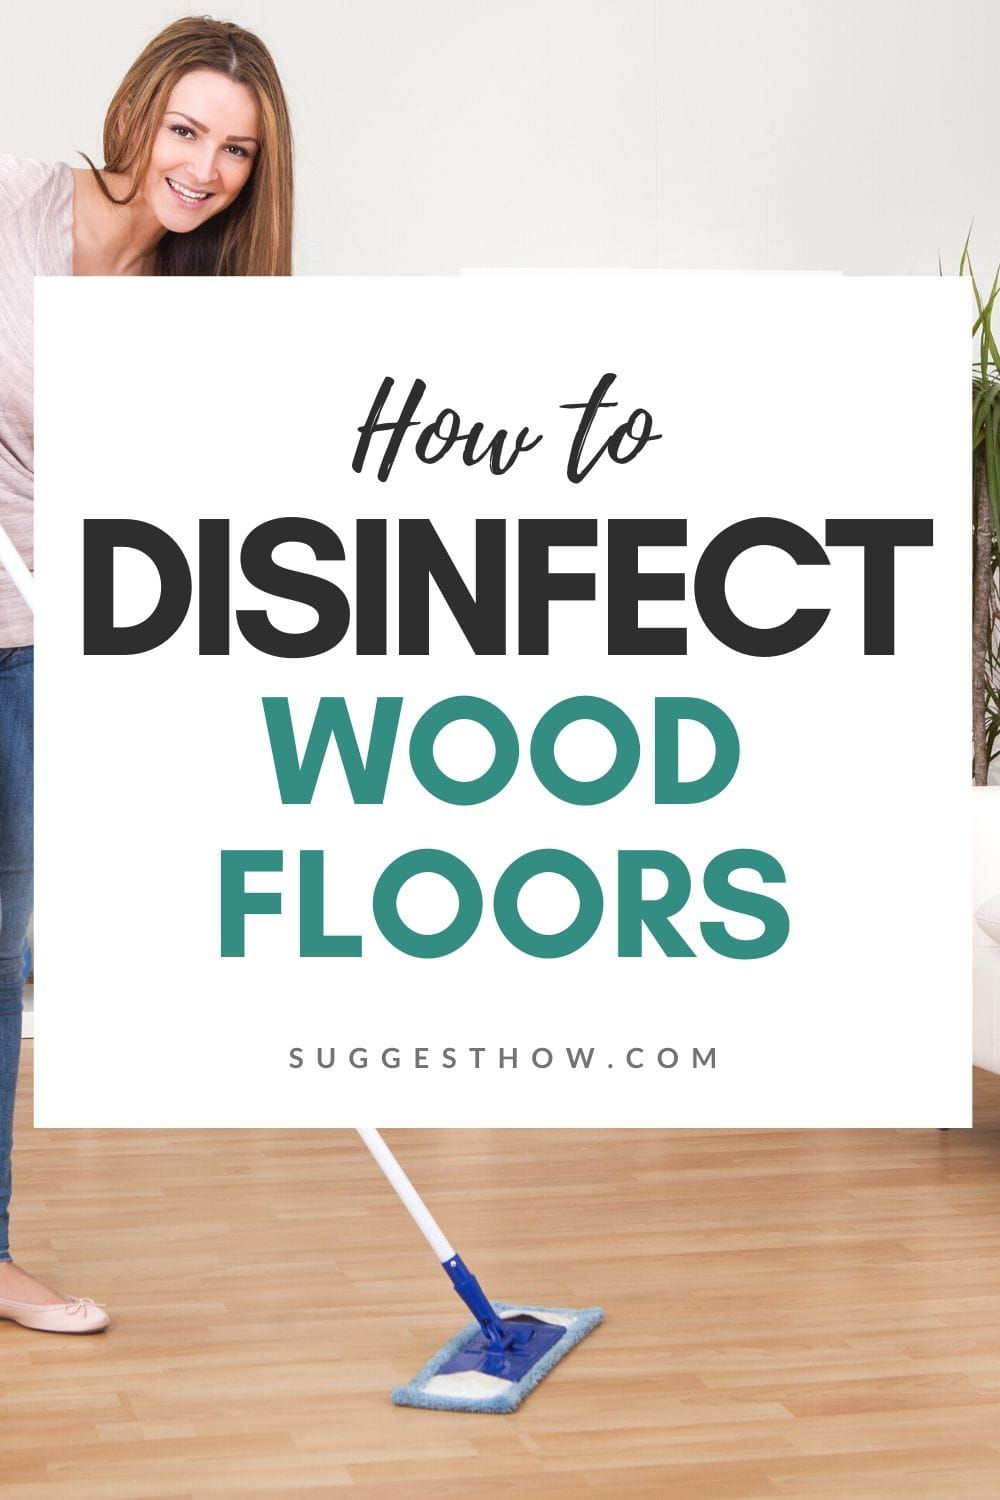 How To Disinfect Wood Floors 7 Step Guide To Floor Disinfection Cleaning Wood Floors Cleaning Wood Flooring